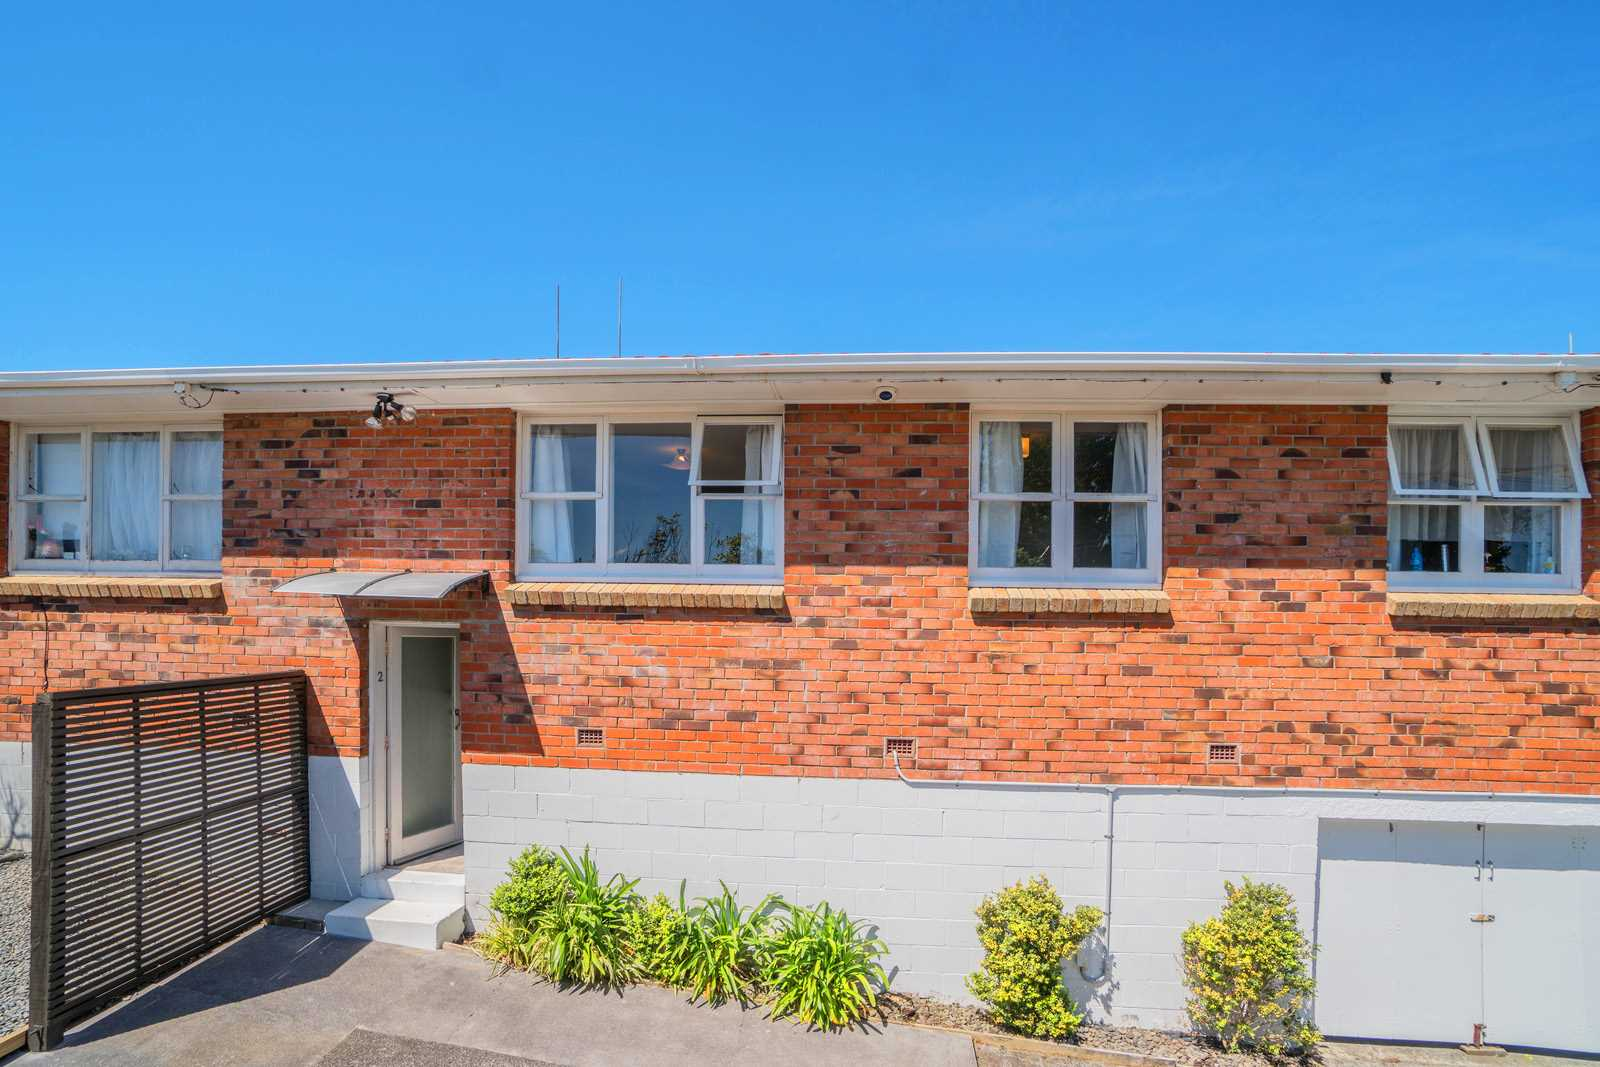 Brick & Tile Beauty - Under Contract